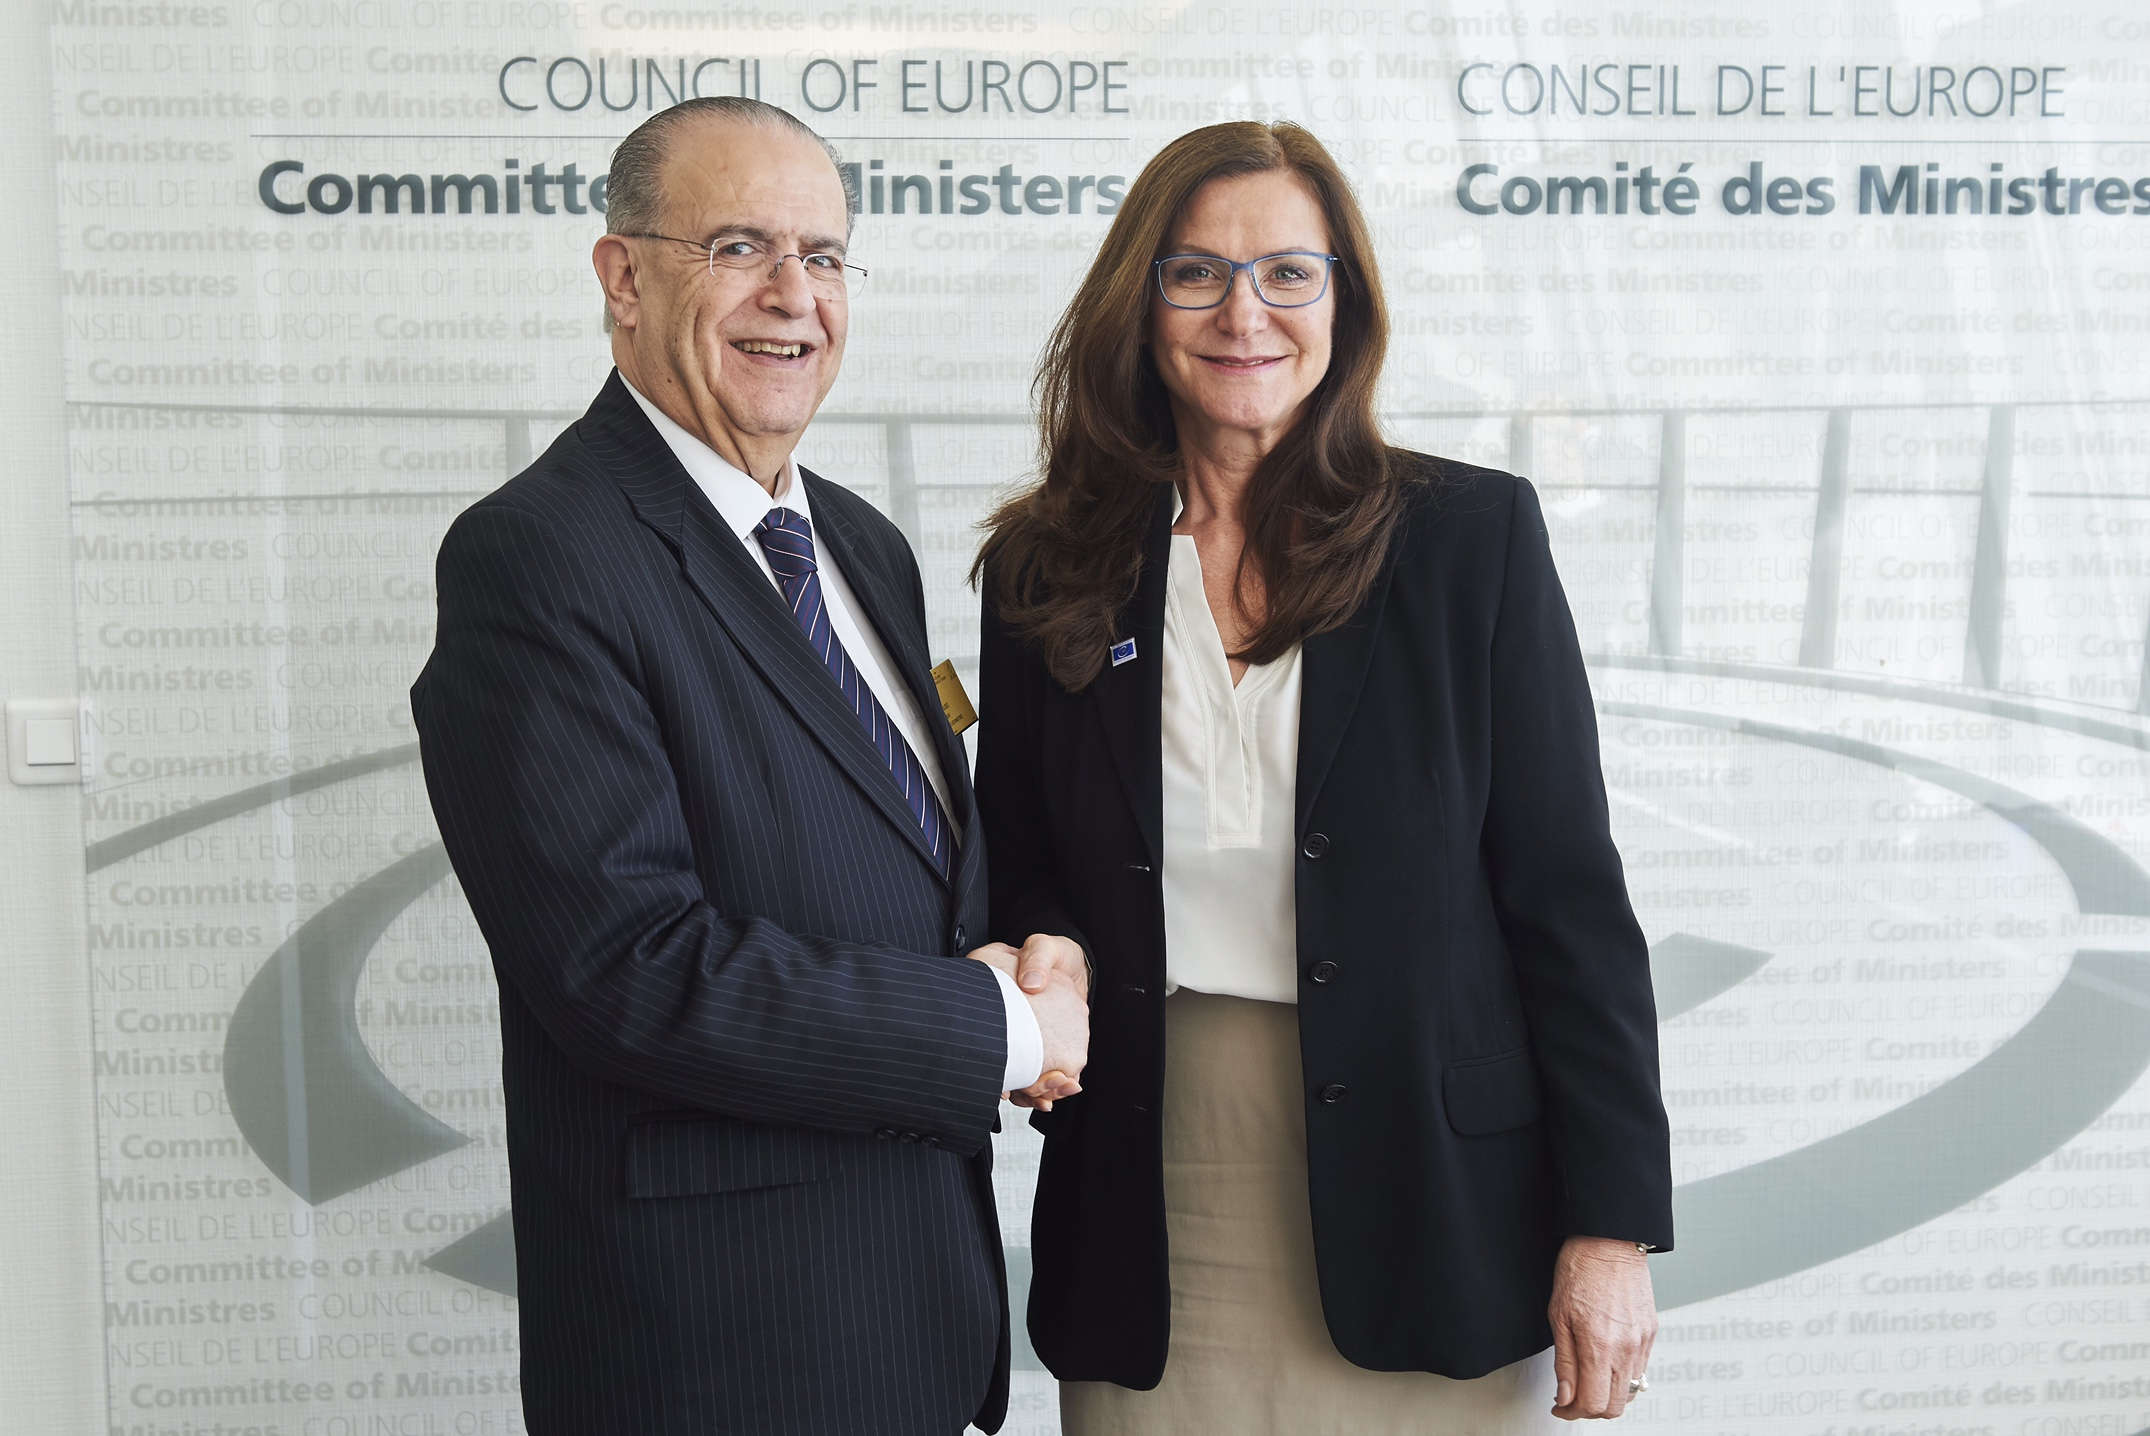 Kasoulides addresses the Congress of Regional Authorities of the Council of Europe